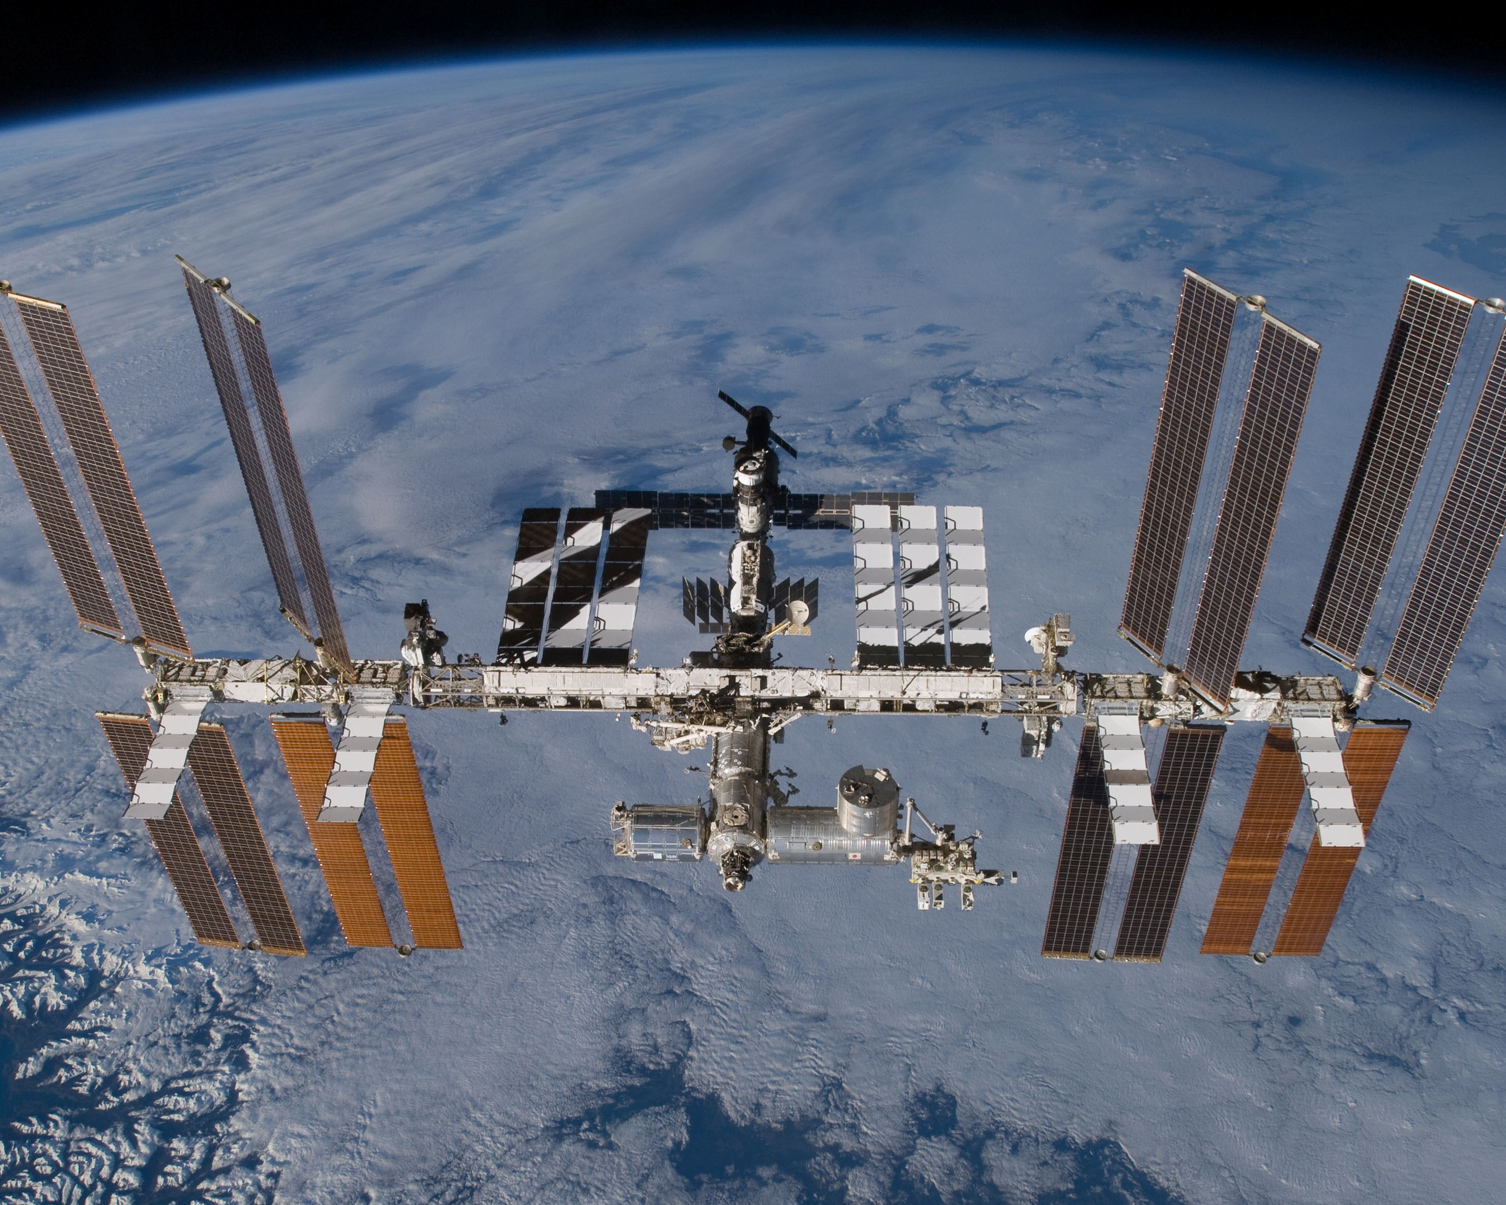 A Russian rocket just carried a NASA astronaut to the ISS… but why?